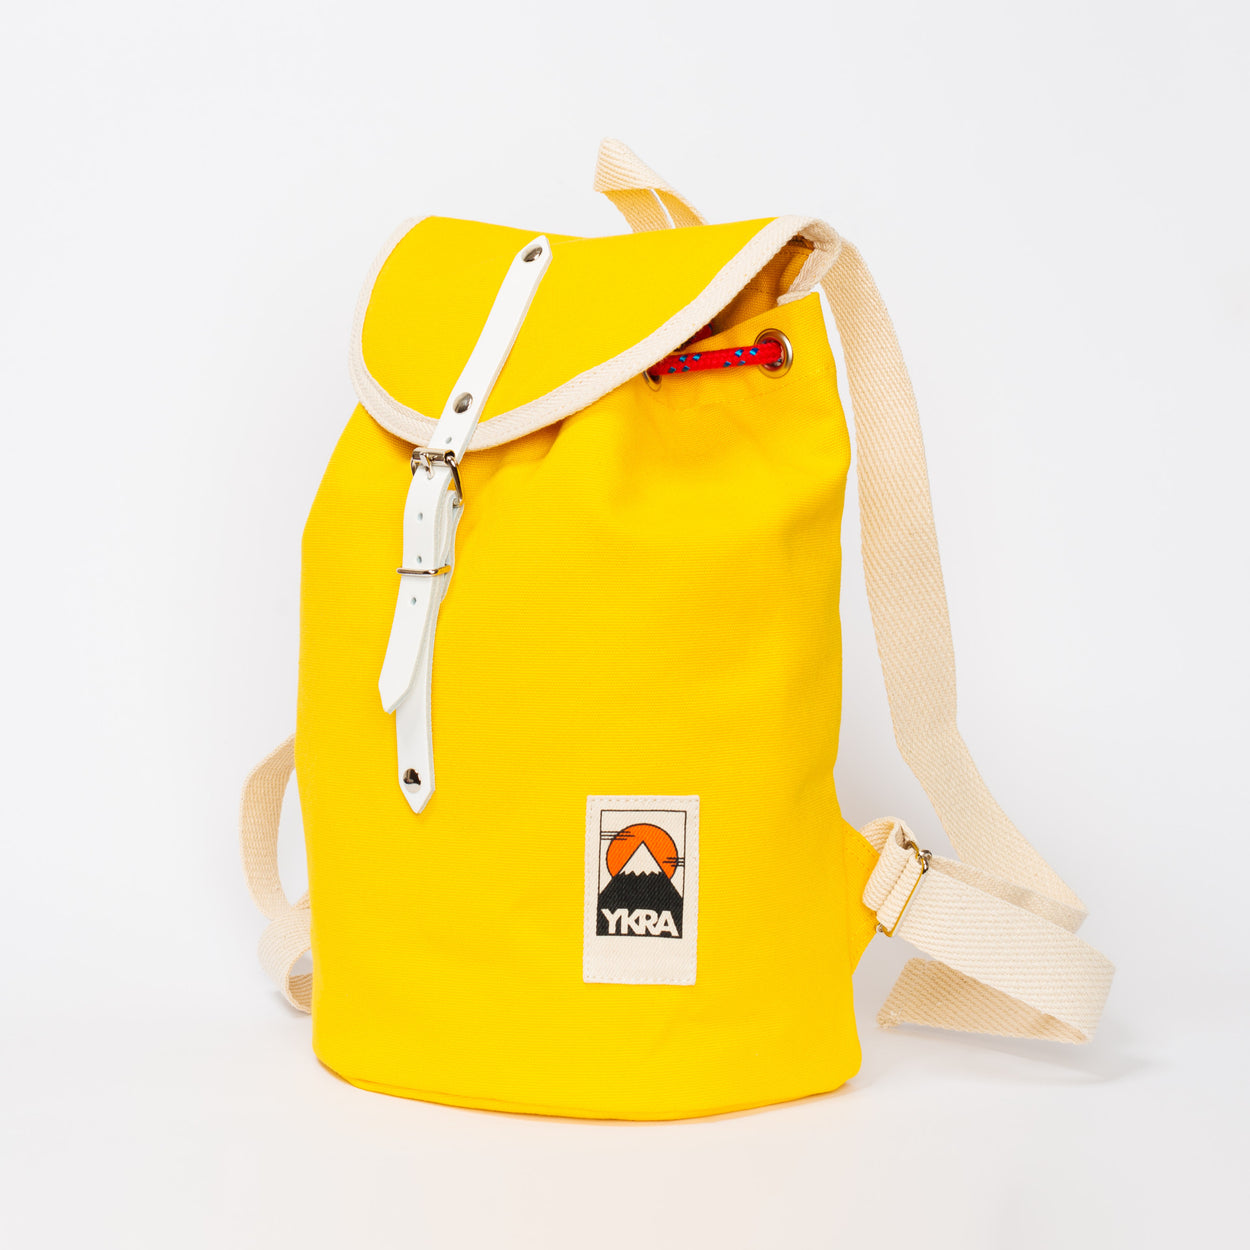 YKRA SAILOR MINI YELLOW